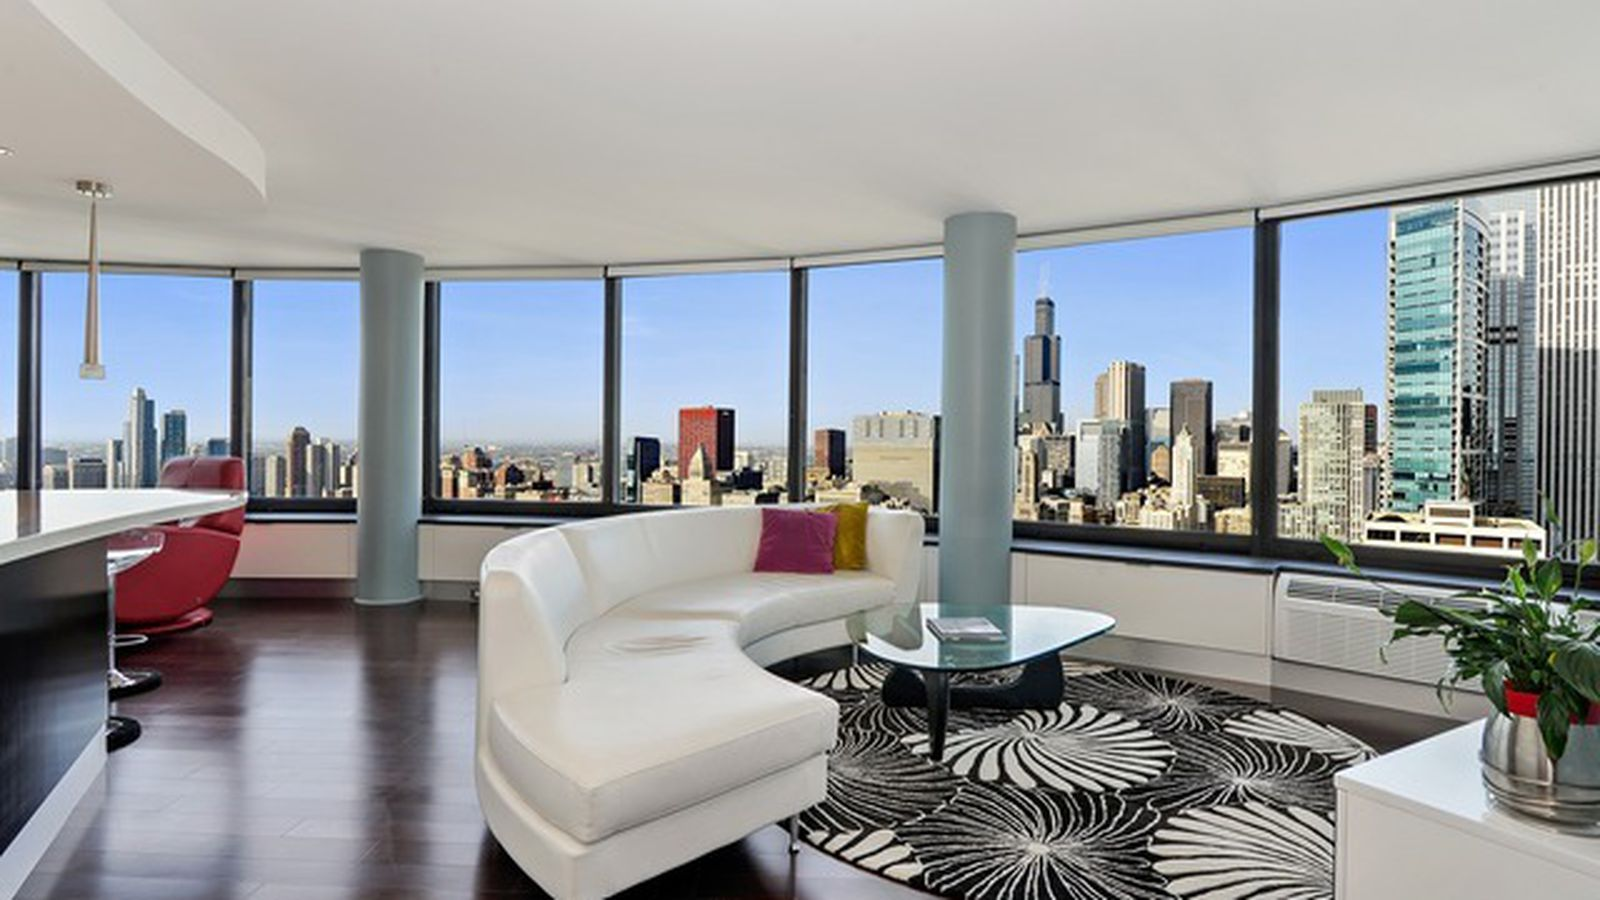 51st Floor Harbor Point Three Bedroom Has Excellent Views Curbed Chicago